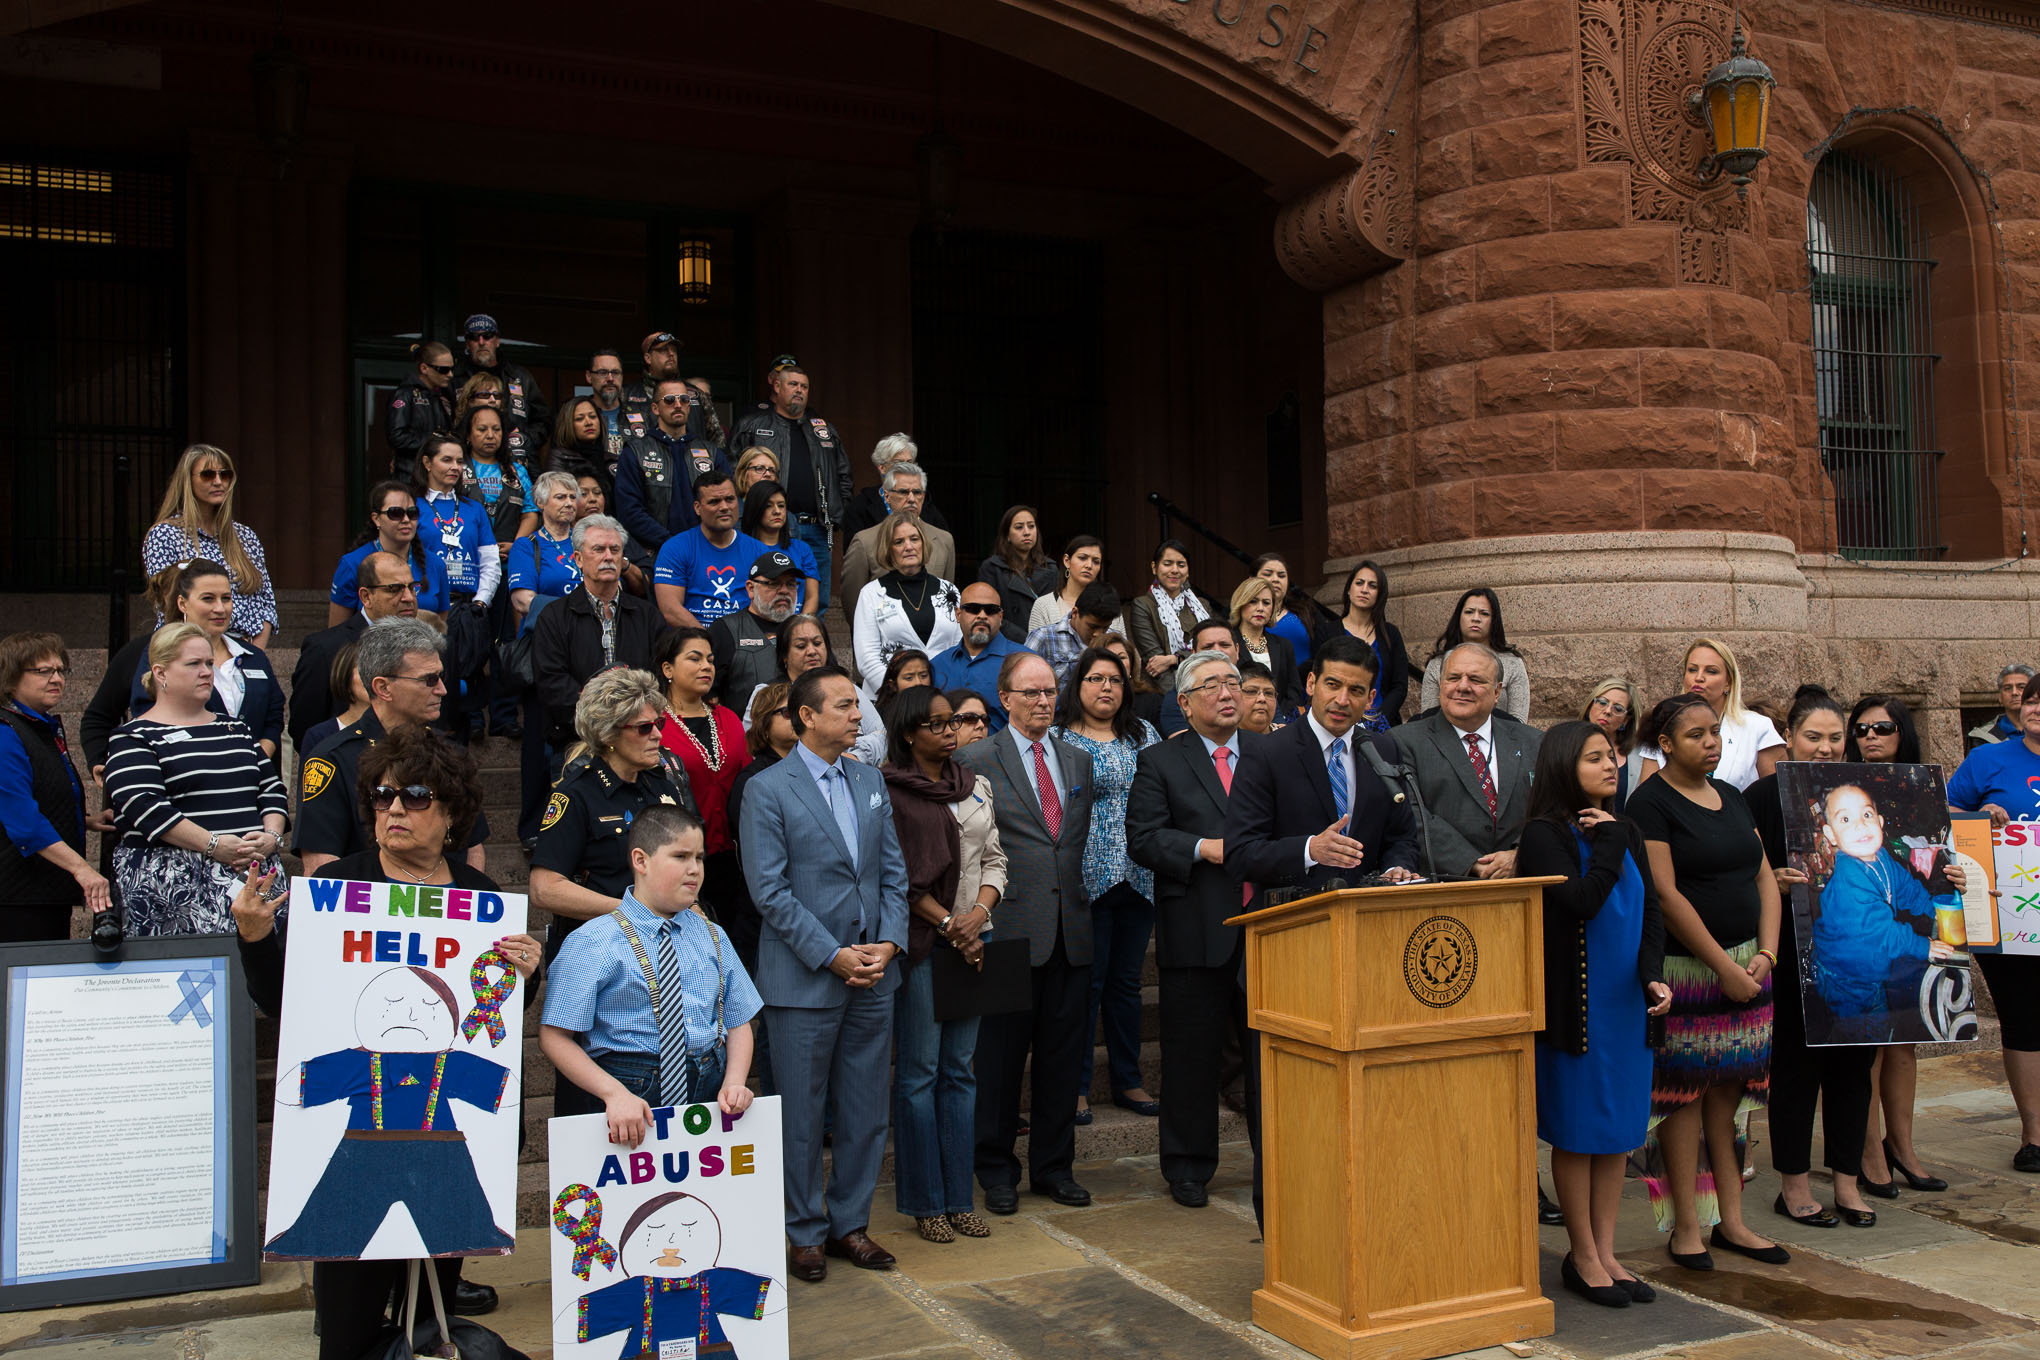 Bexar County District Attorney Nico LaHood speaks as child protection advocates stand behind him on the Bexar County Courthouse steps. Photo by Scott Ball.